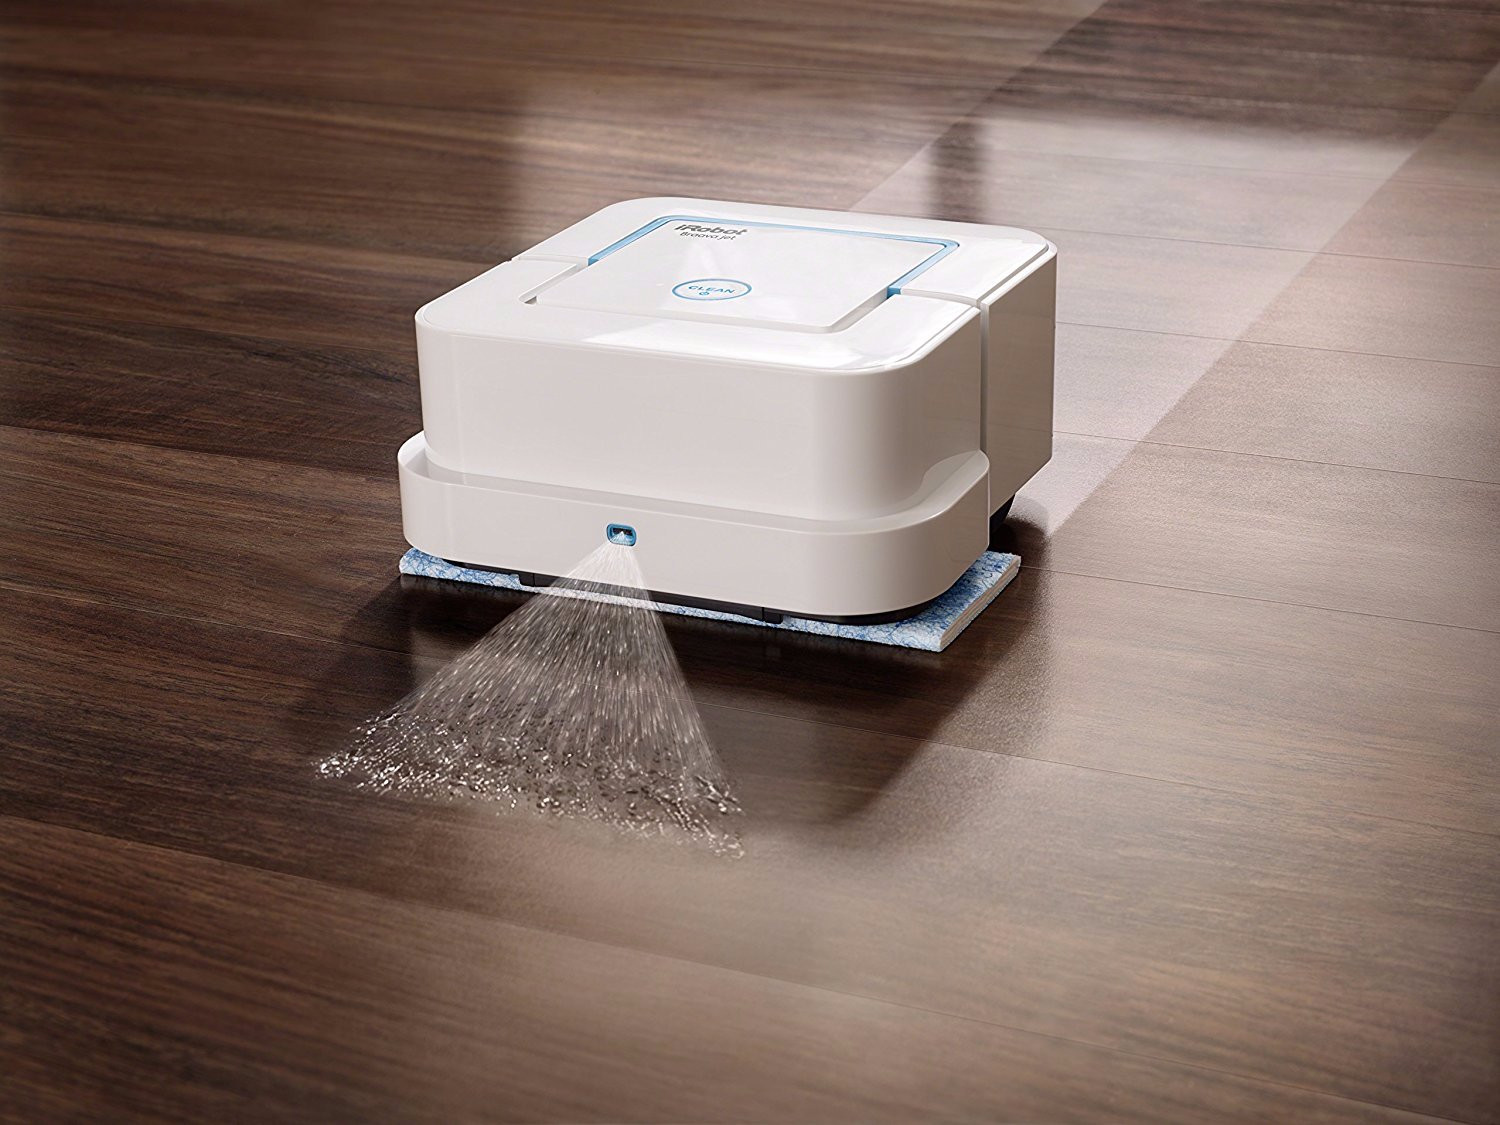 Hardwood Flooring Labor Day Sale Of 12 Smart Home Gadgets that Practically Clean the House for You Throughout Irobot Braava